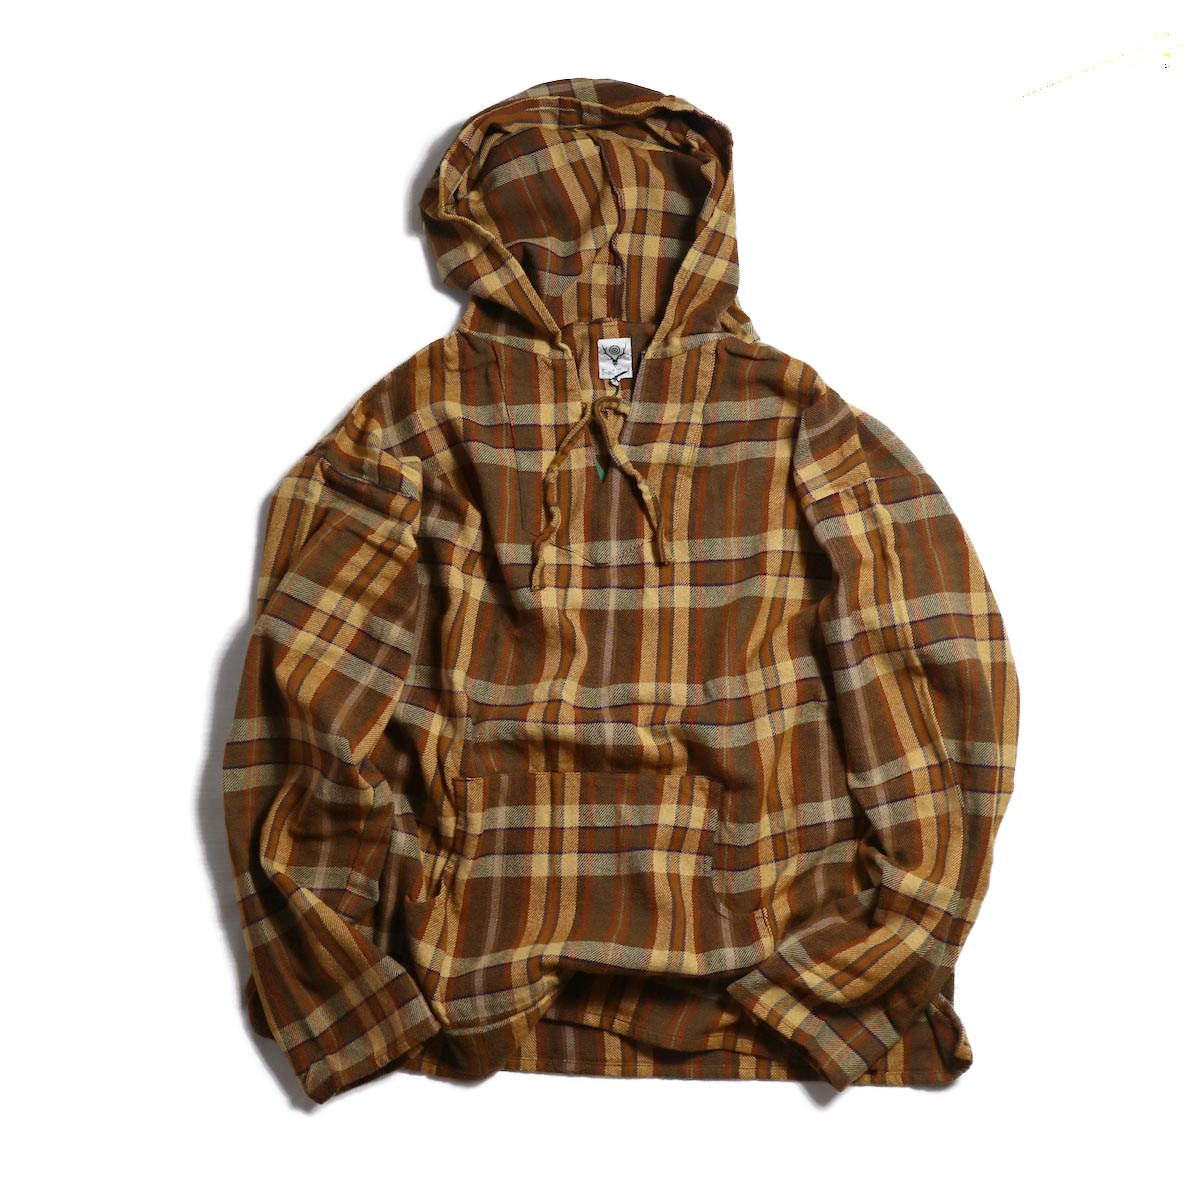 SOUTH2 WEST8 / Mexican Parka Cotton Twill/Plaid -BROWN